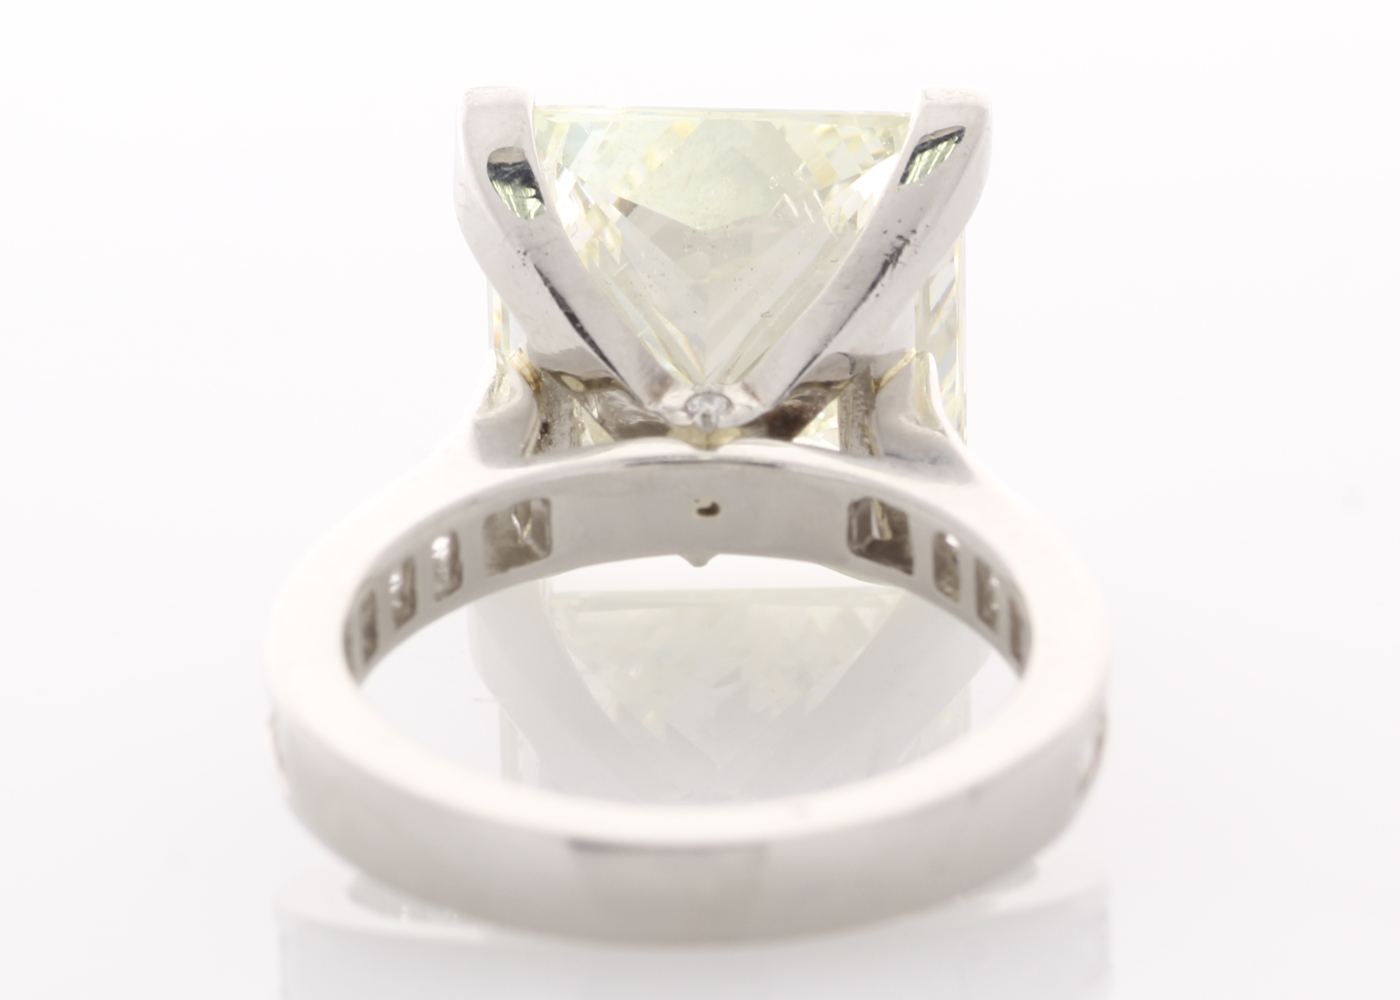 Lot 27 - 18ct White Gold Single Stone Prong Set With Stone Set Shoulders Diamond Ring 10.00 Carats